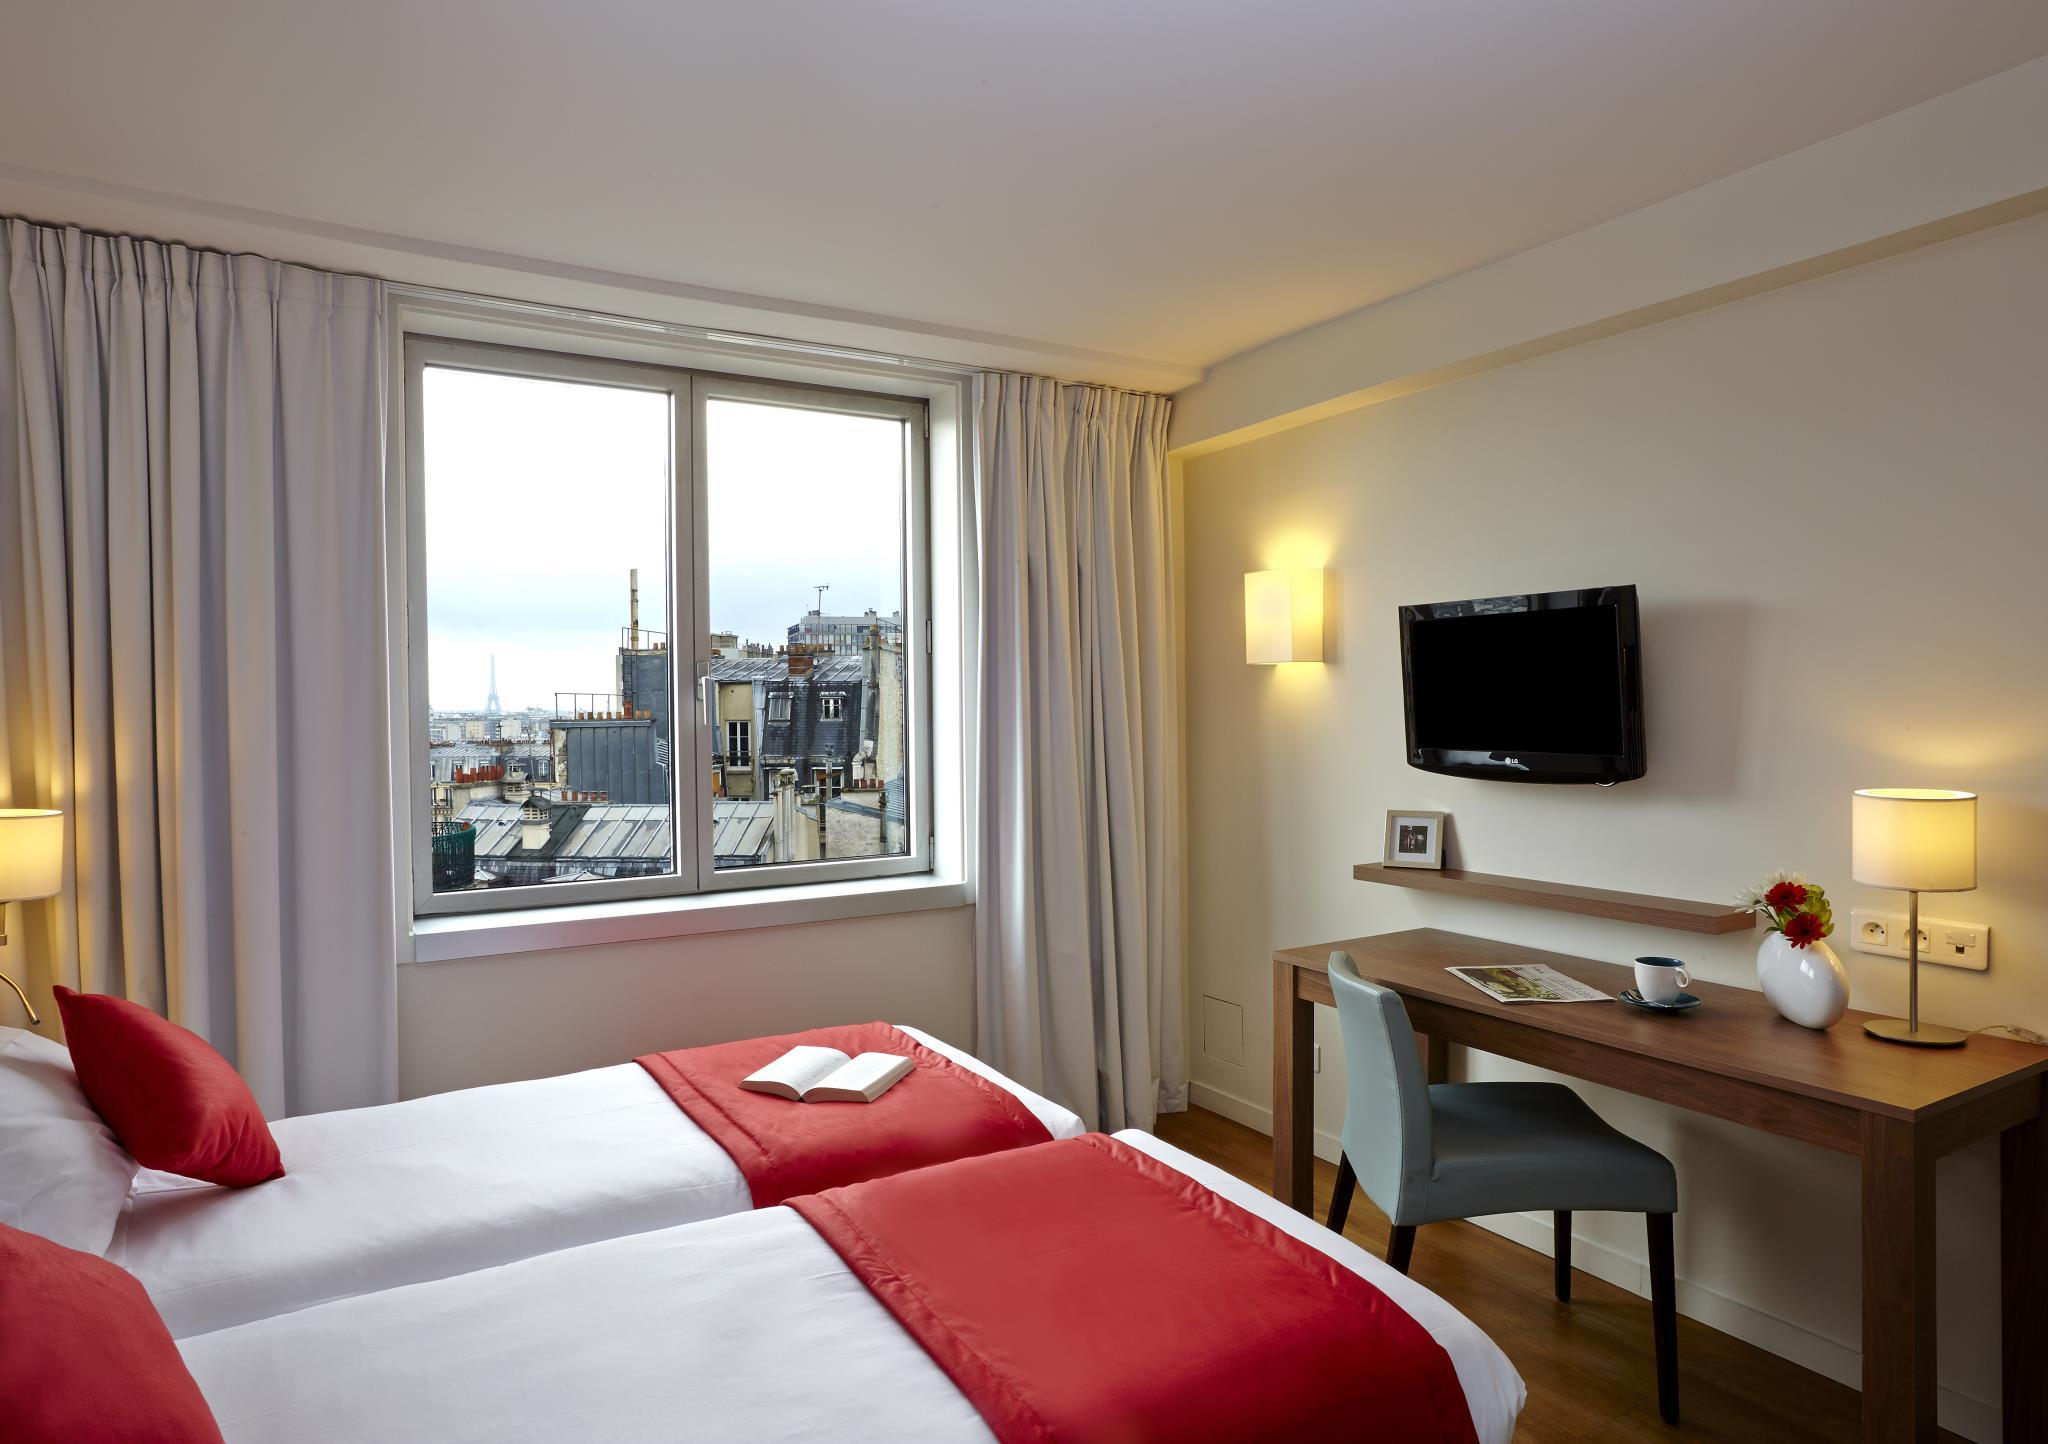 Le Meilleur Citadines Place D'italie Paris In France Room Deals Ce Mois Ci